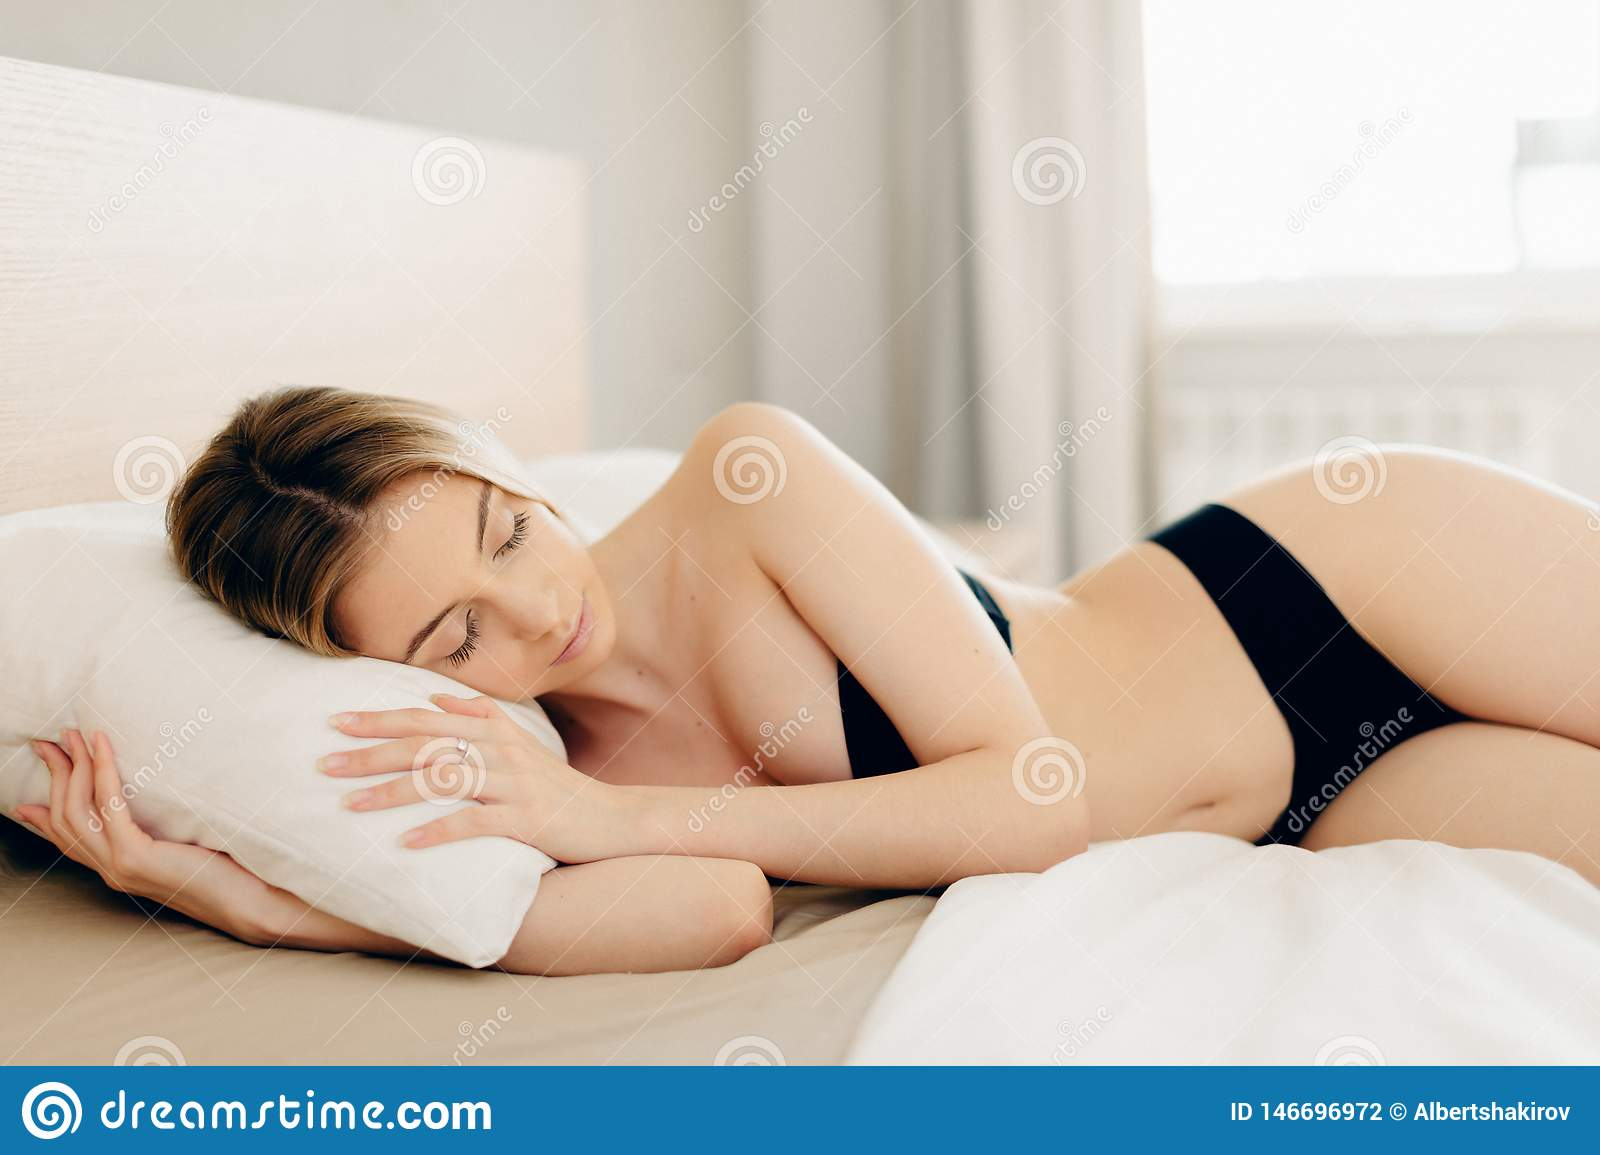 Woman In Black Underwear Sleeping In Bed In Seductive Pose Without